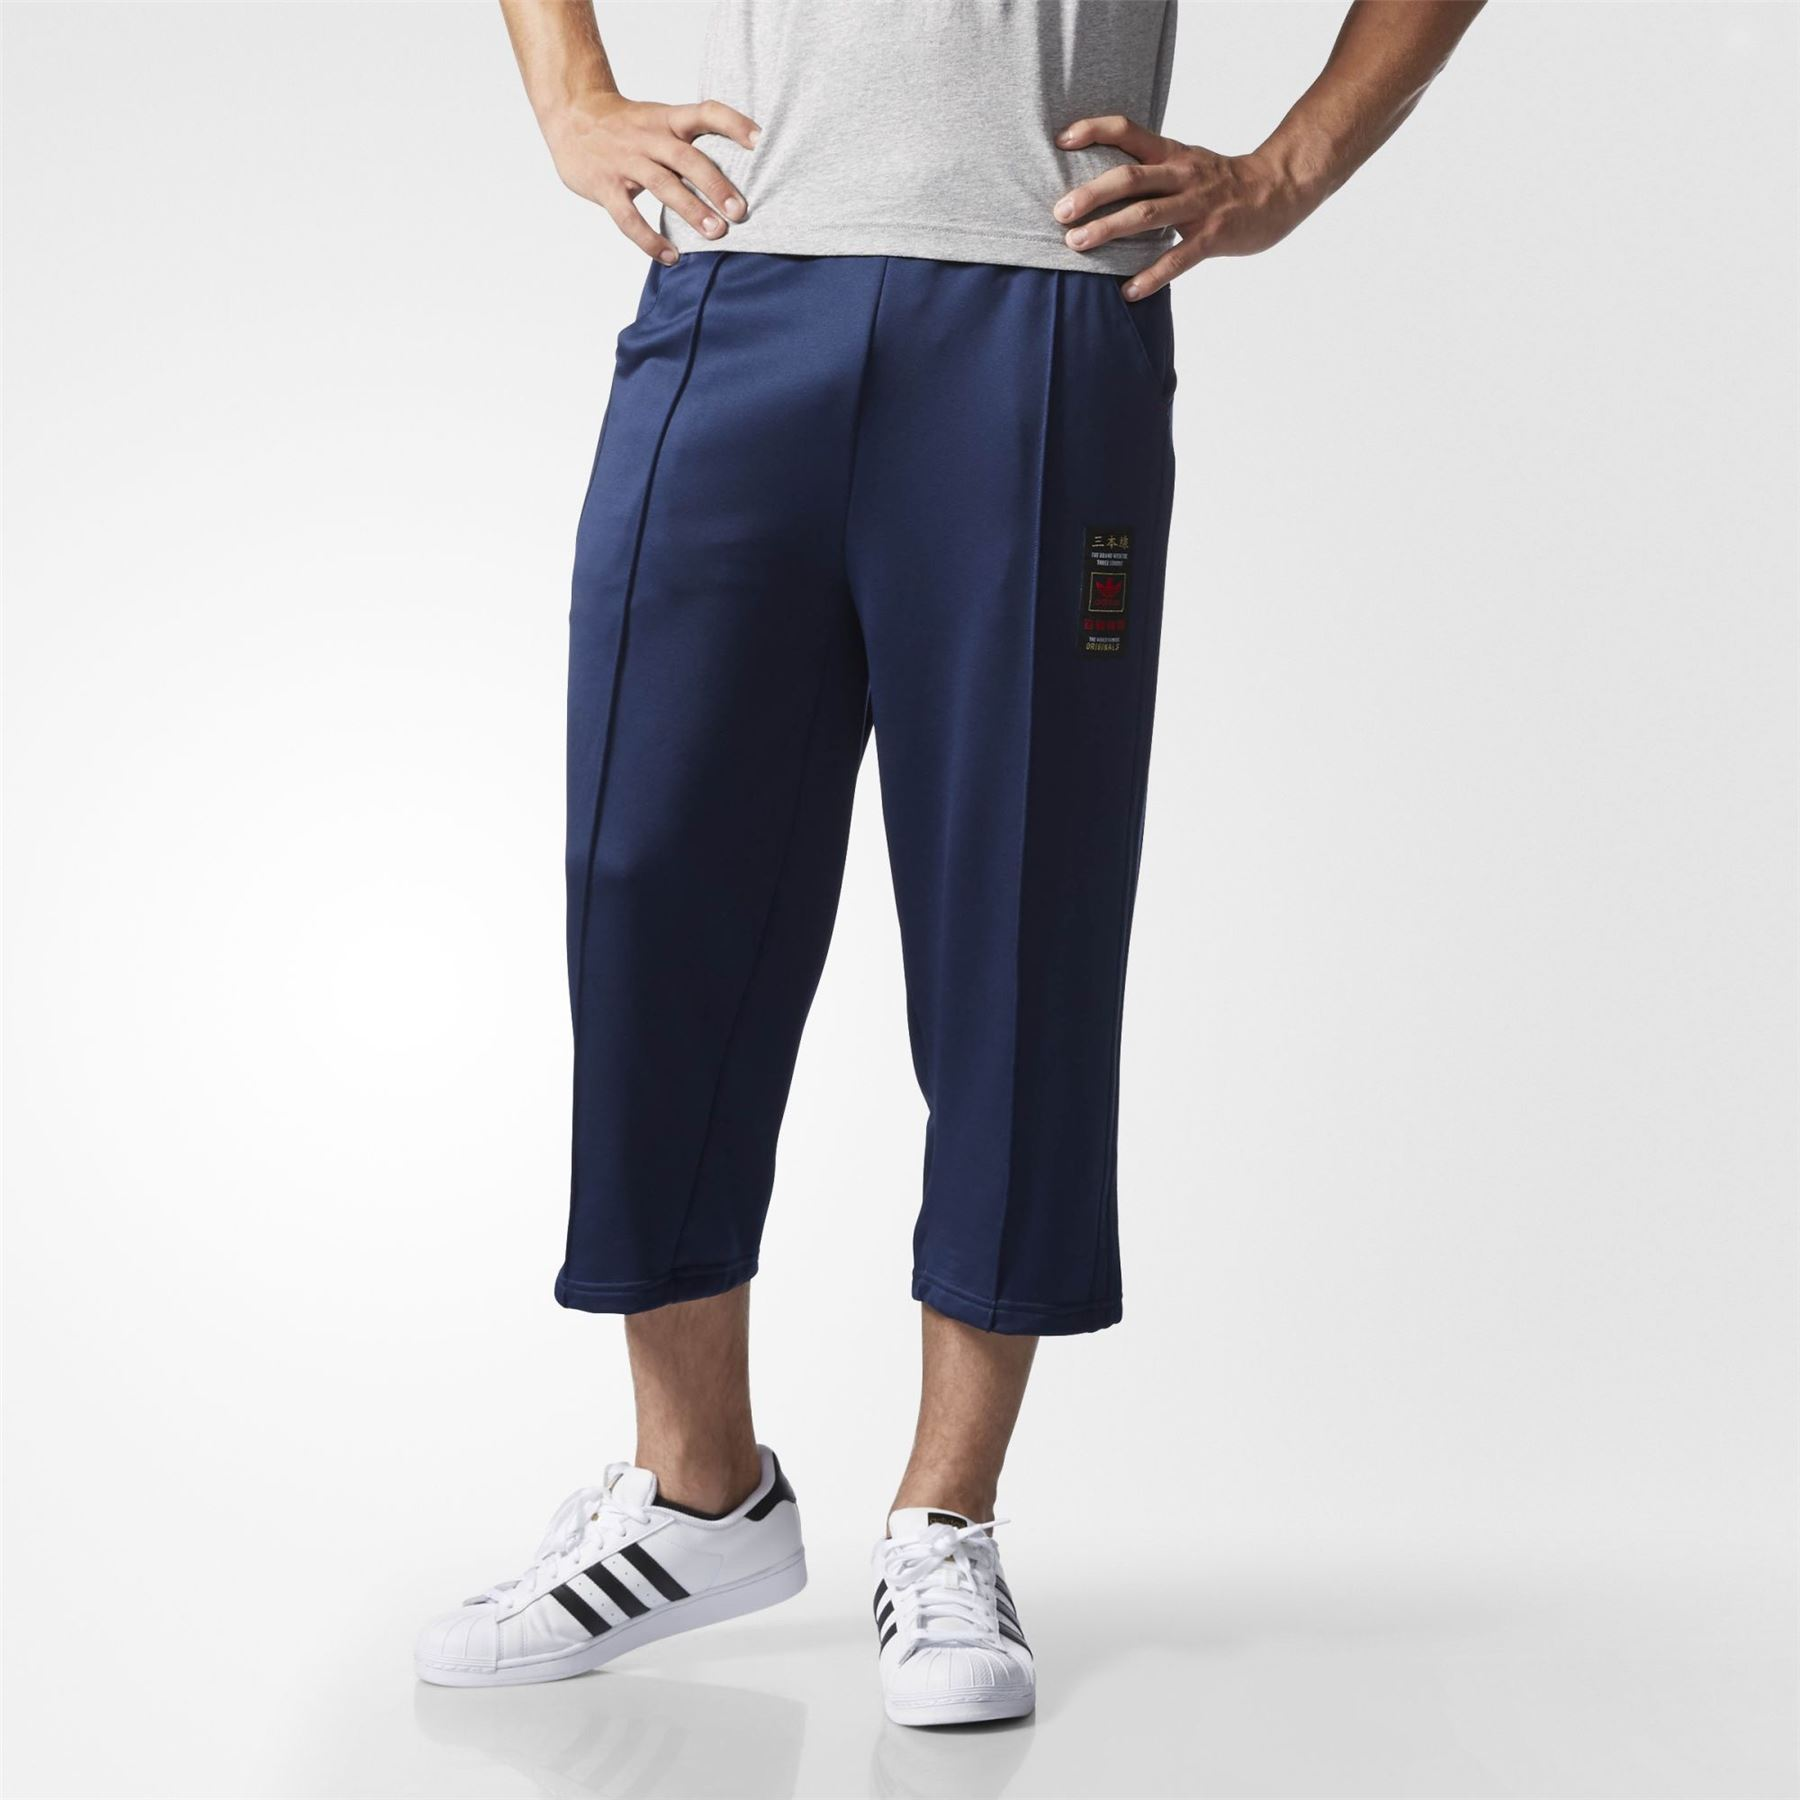 adidas ORIGINALS BUDO WIDE LEG CROPPED SWEATPANTS NAVY MEN/'S RARE DEADSTOCK